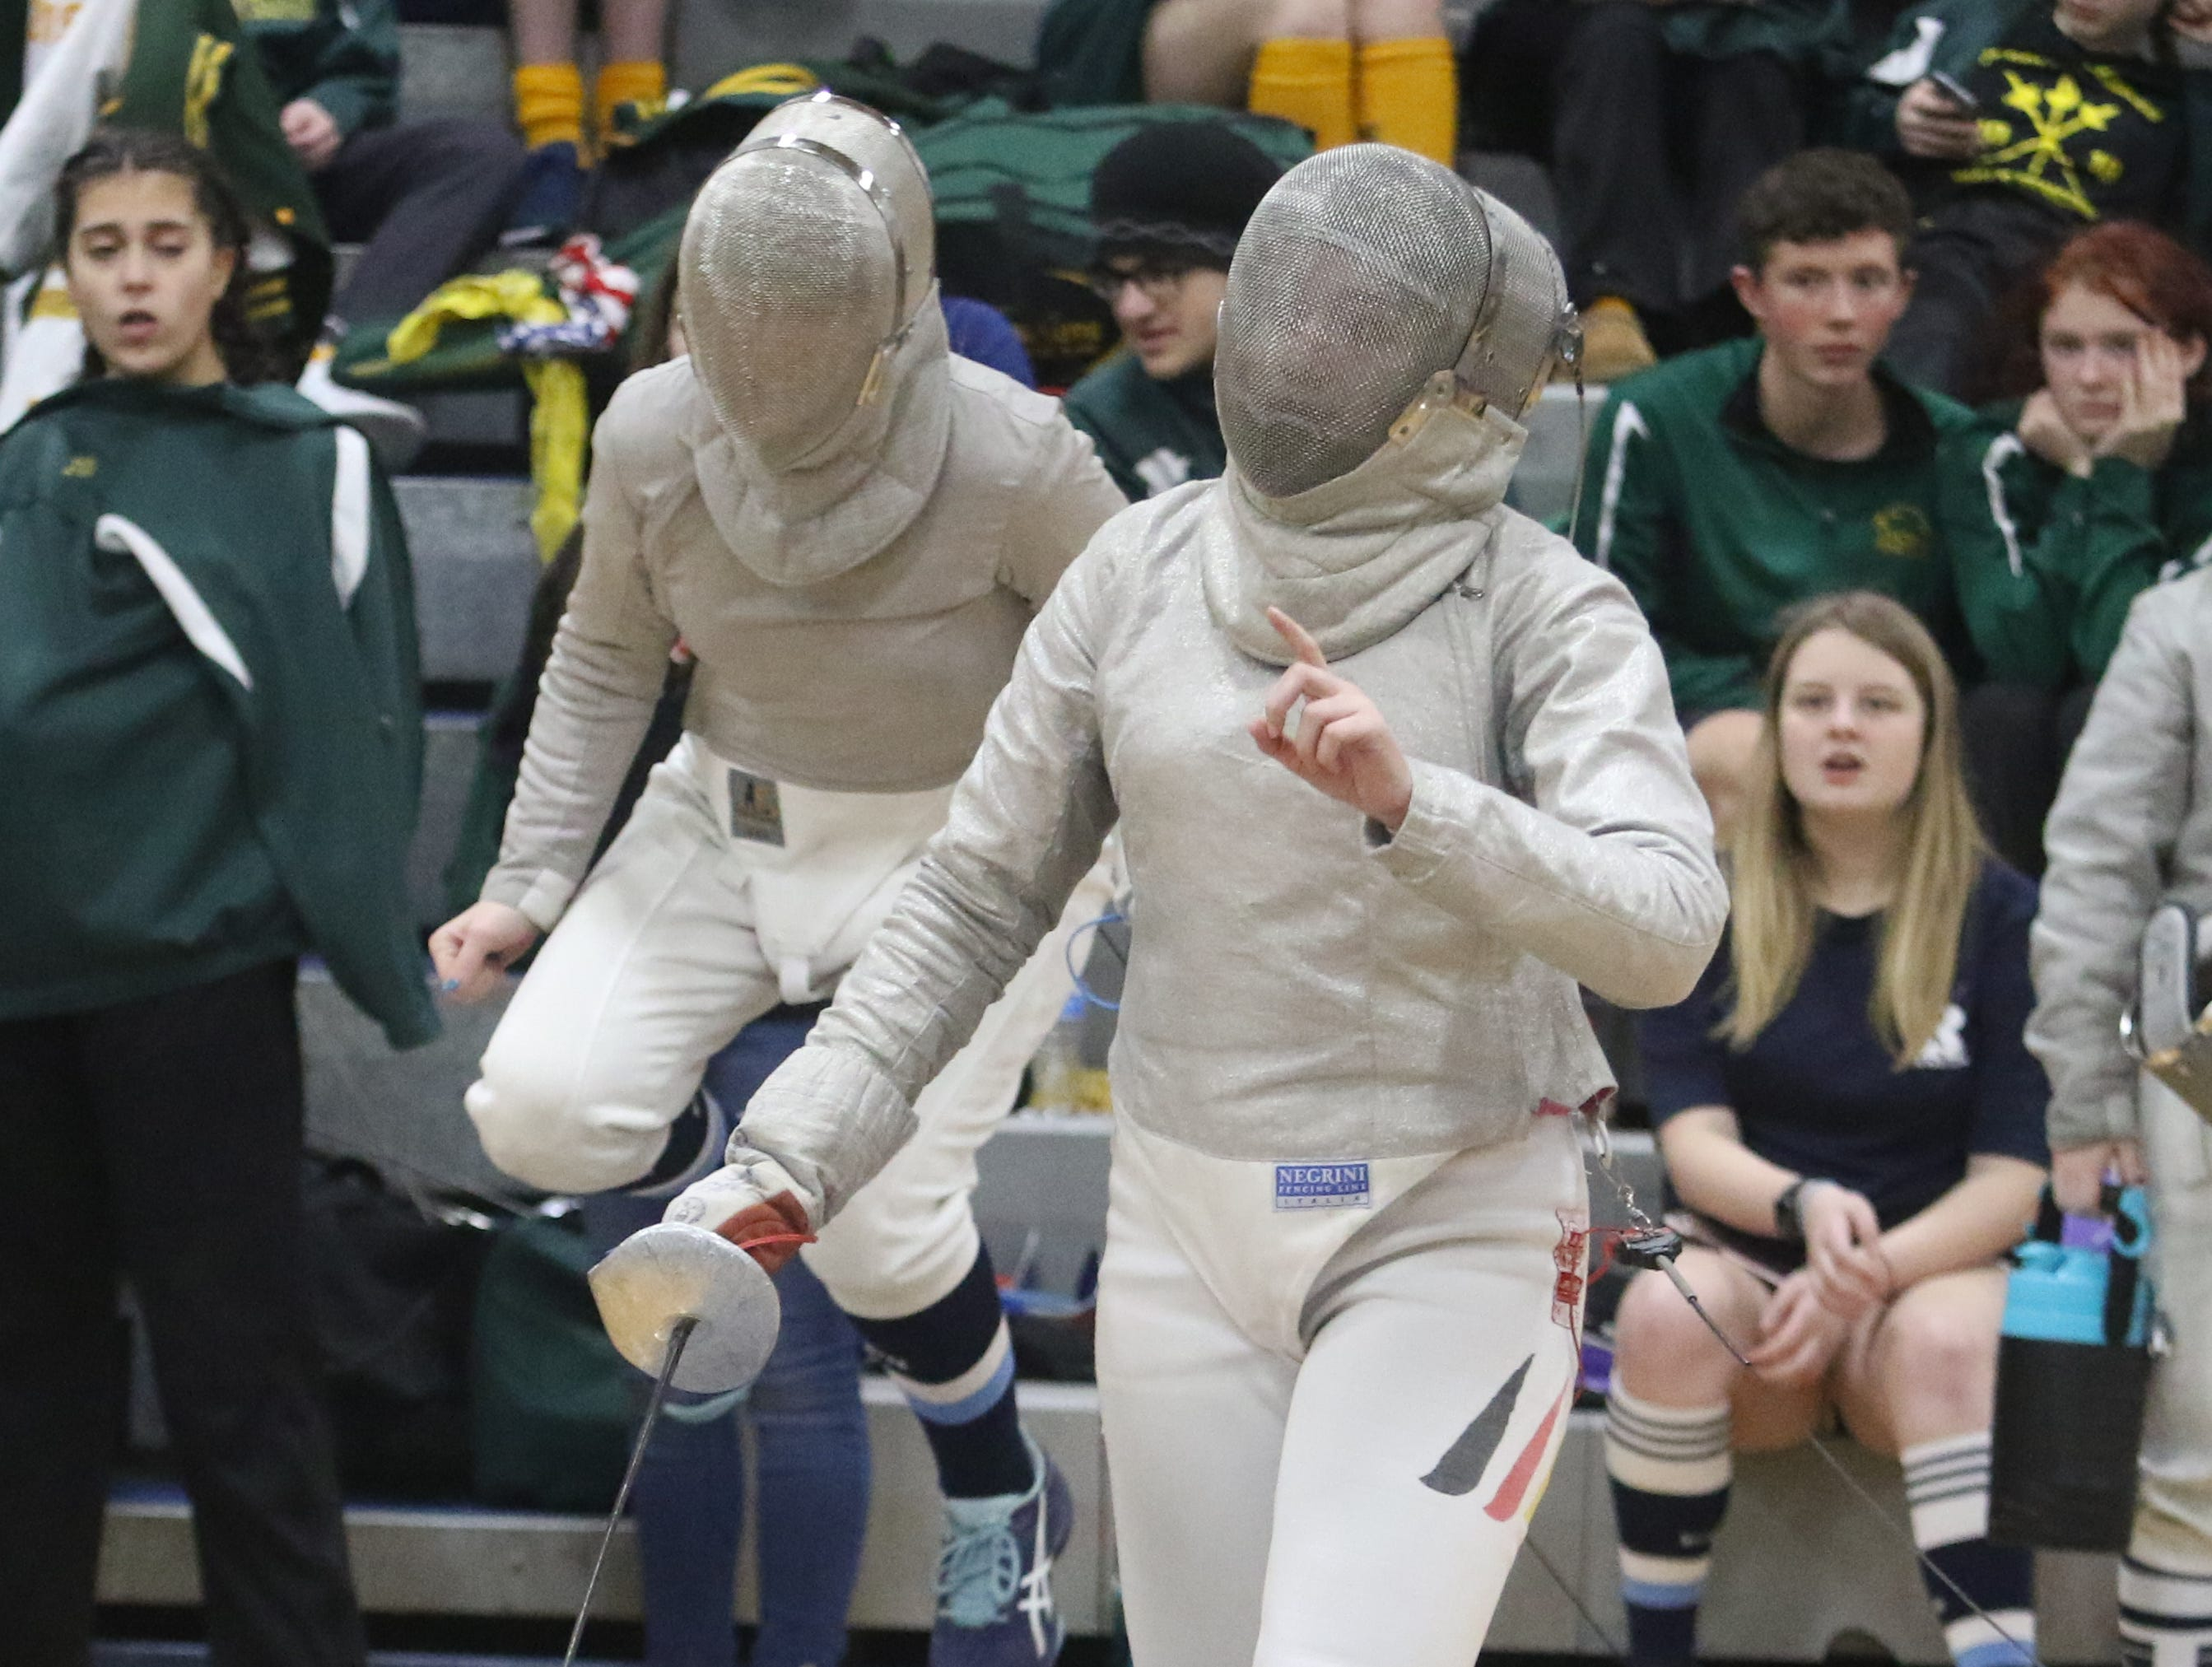 Julia Yellen of Randolph and Vivien Buchmann of Kinnelon as they competed in the saber final.